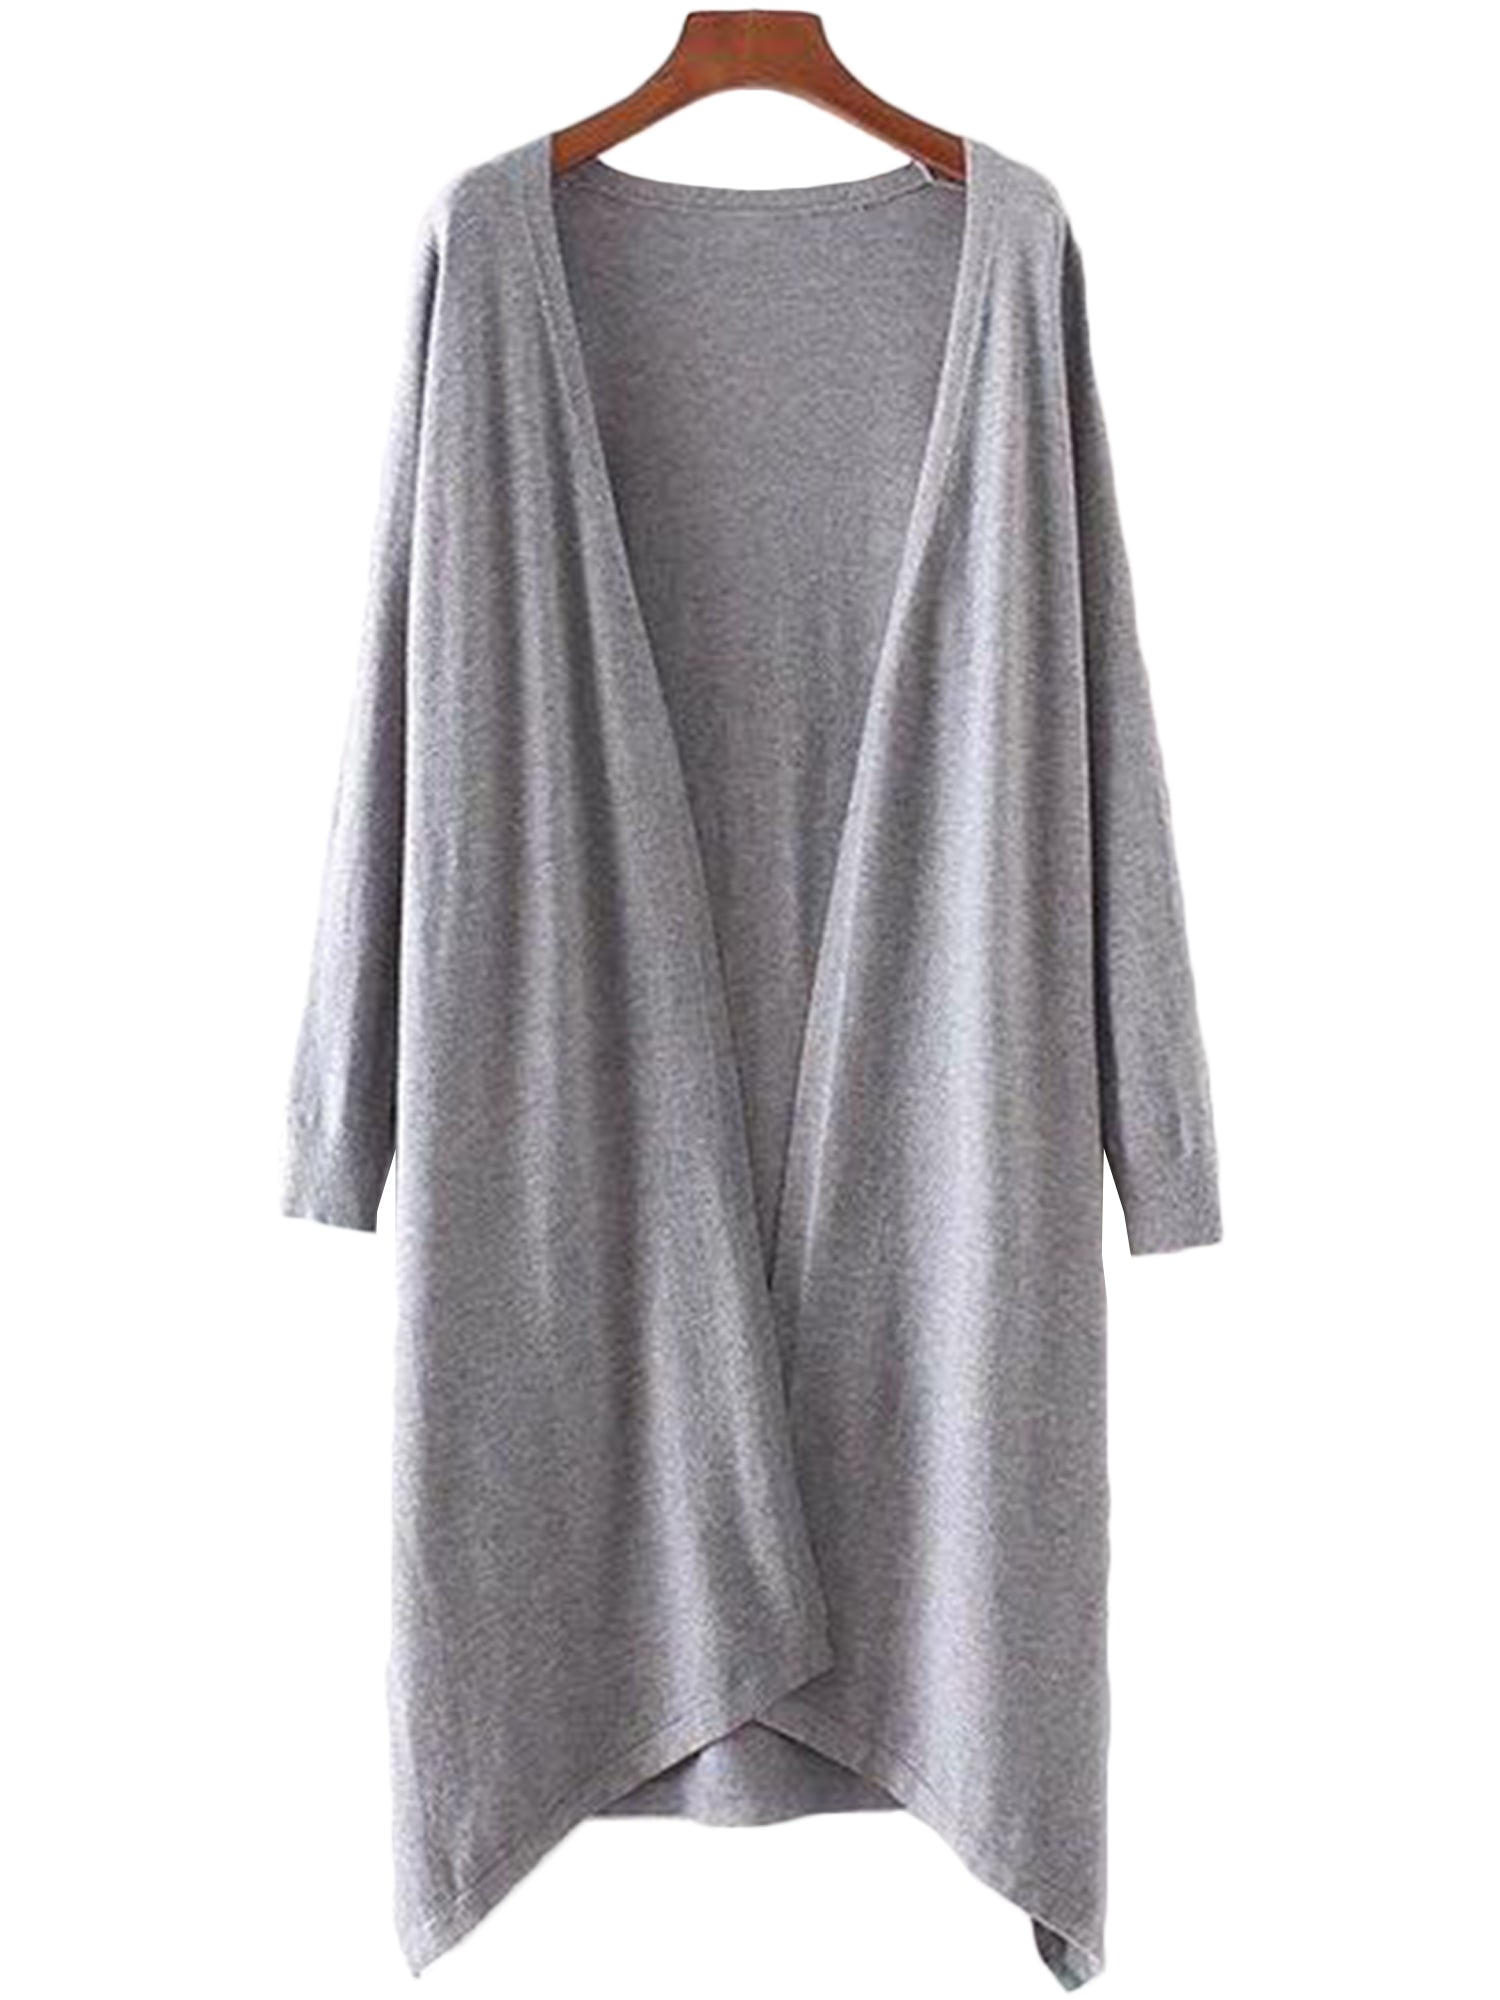 'Aiko' Wrap Thin Long Cardigan ( so silky soft!! )